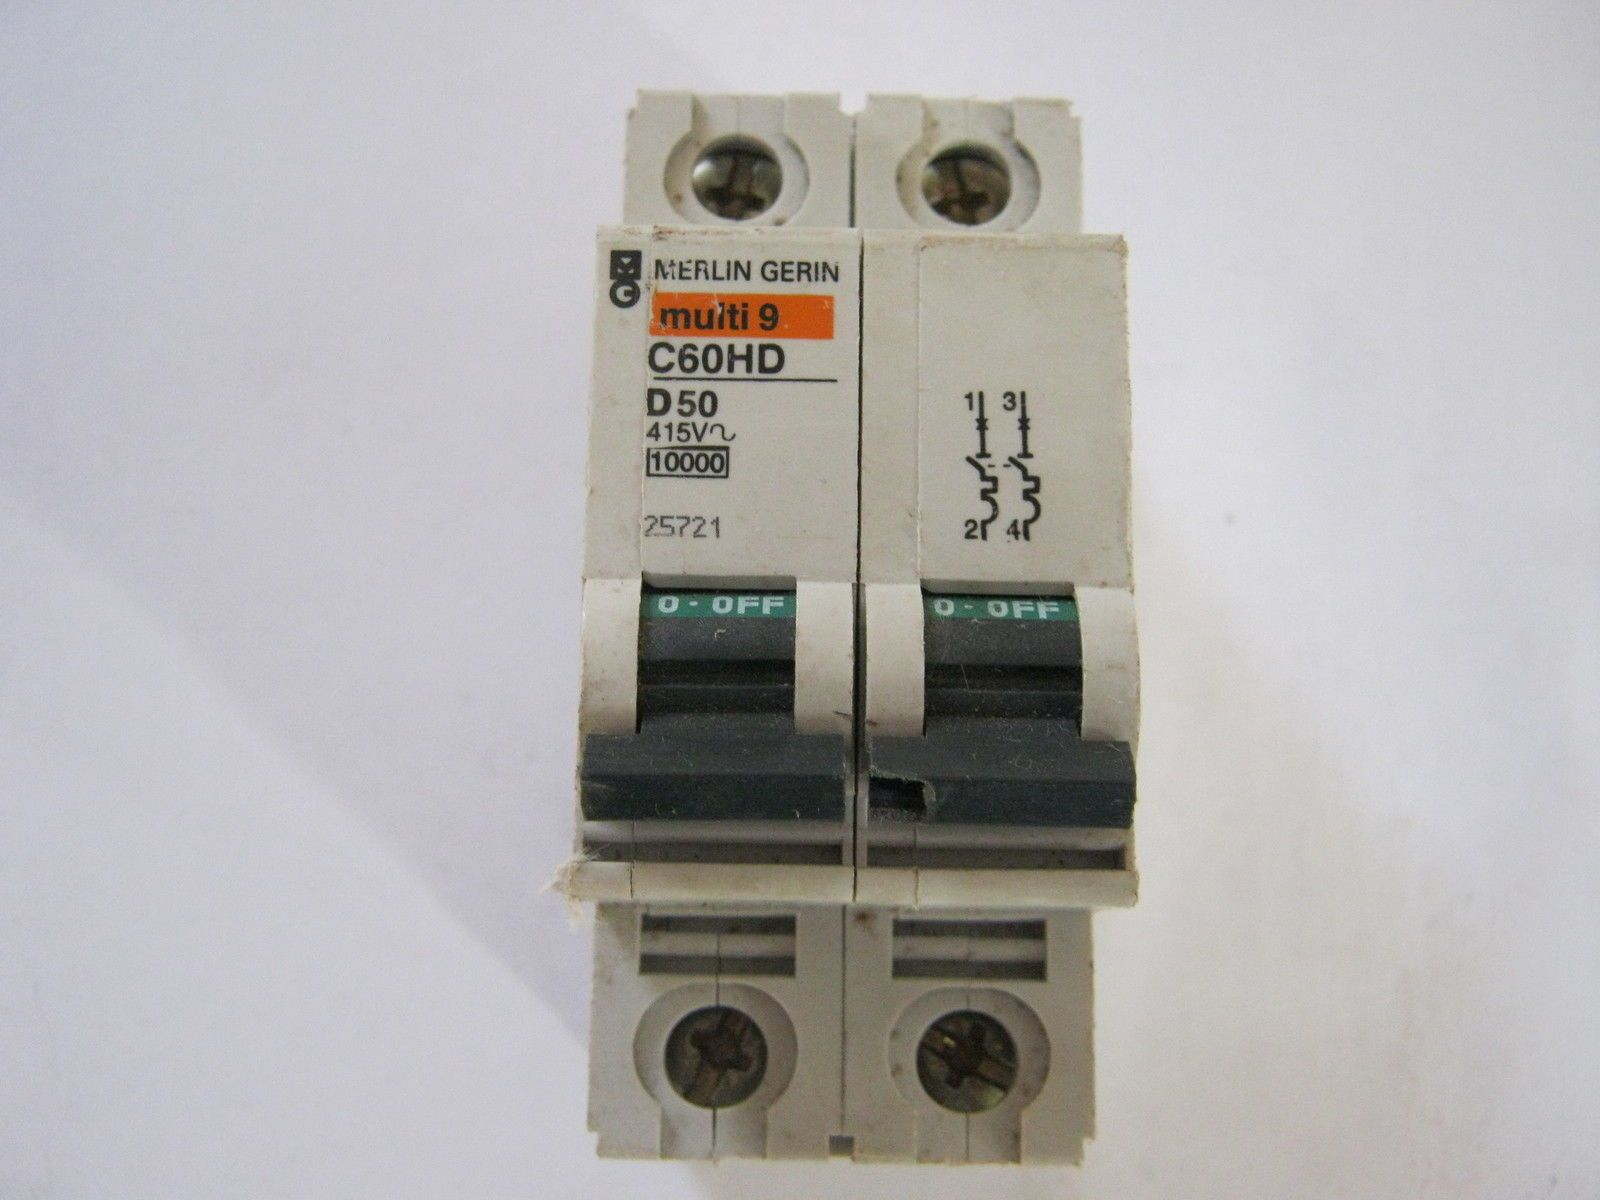 Merlin Gerin Multi 9 C60hd D50 415 V Double Pole Mcb 25721